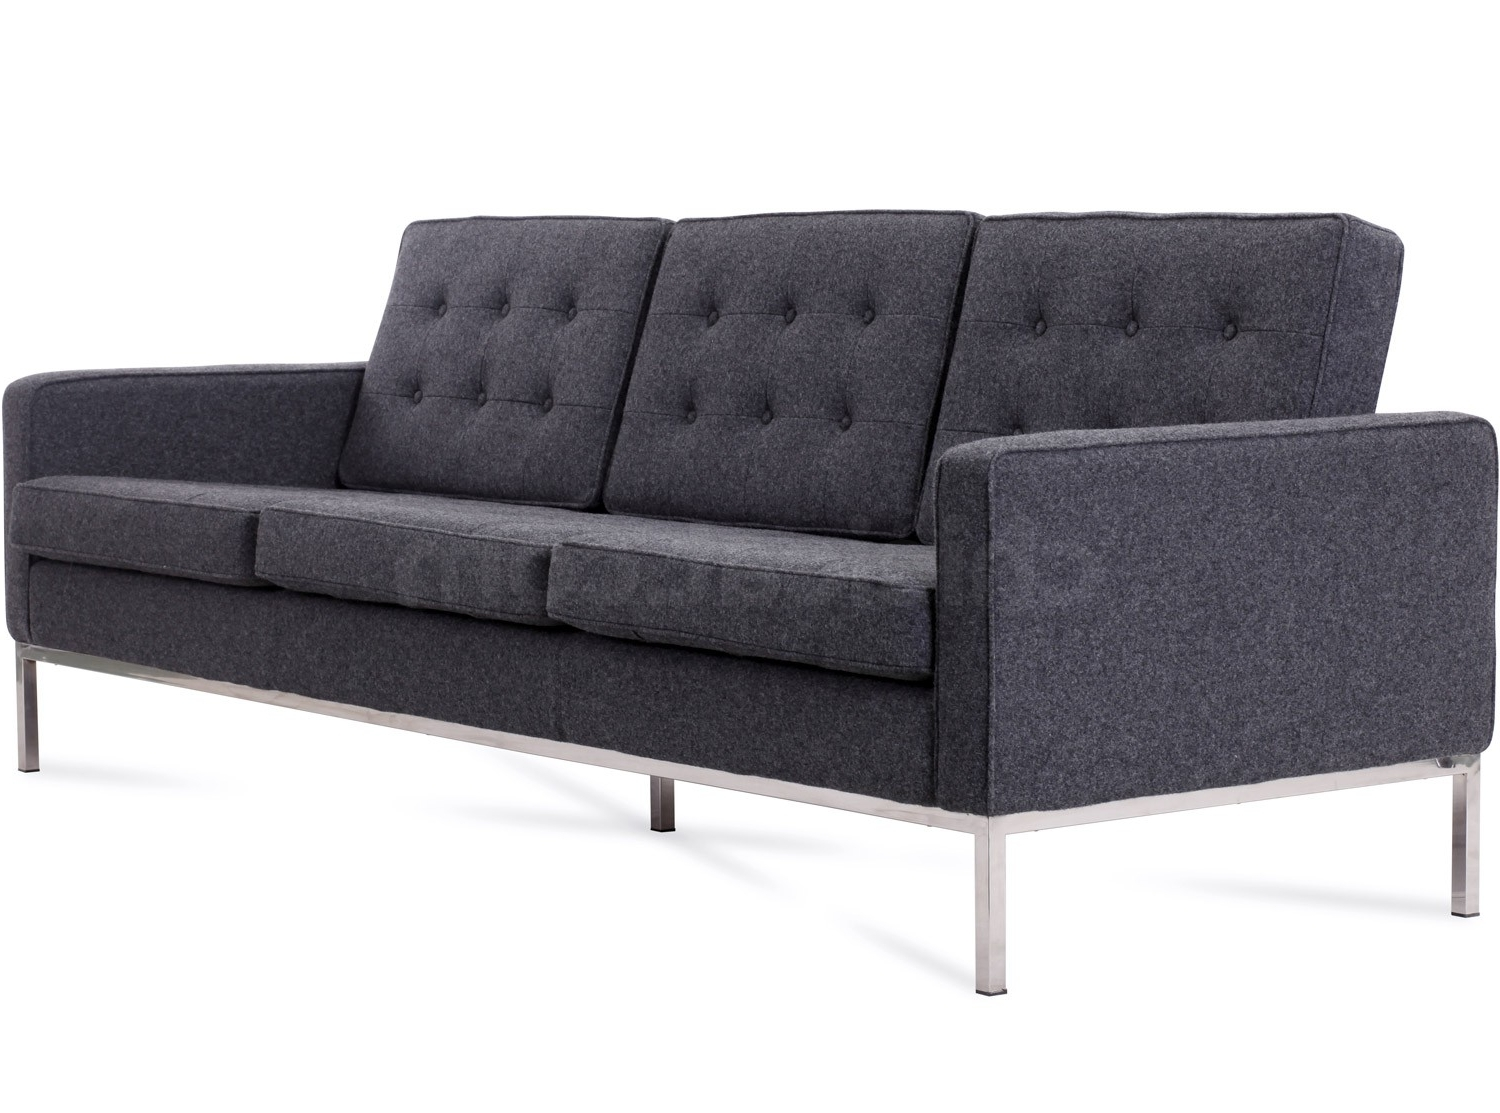 Florence Sofas And Loveseats Throughout Widely Used Florence Knoll Sofa Replica – Fjellkjeden (View 7 of 20)